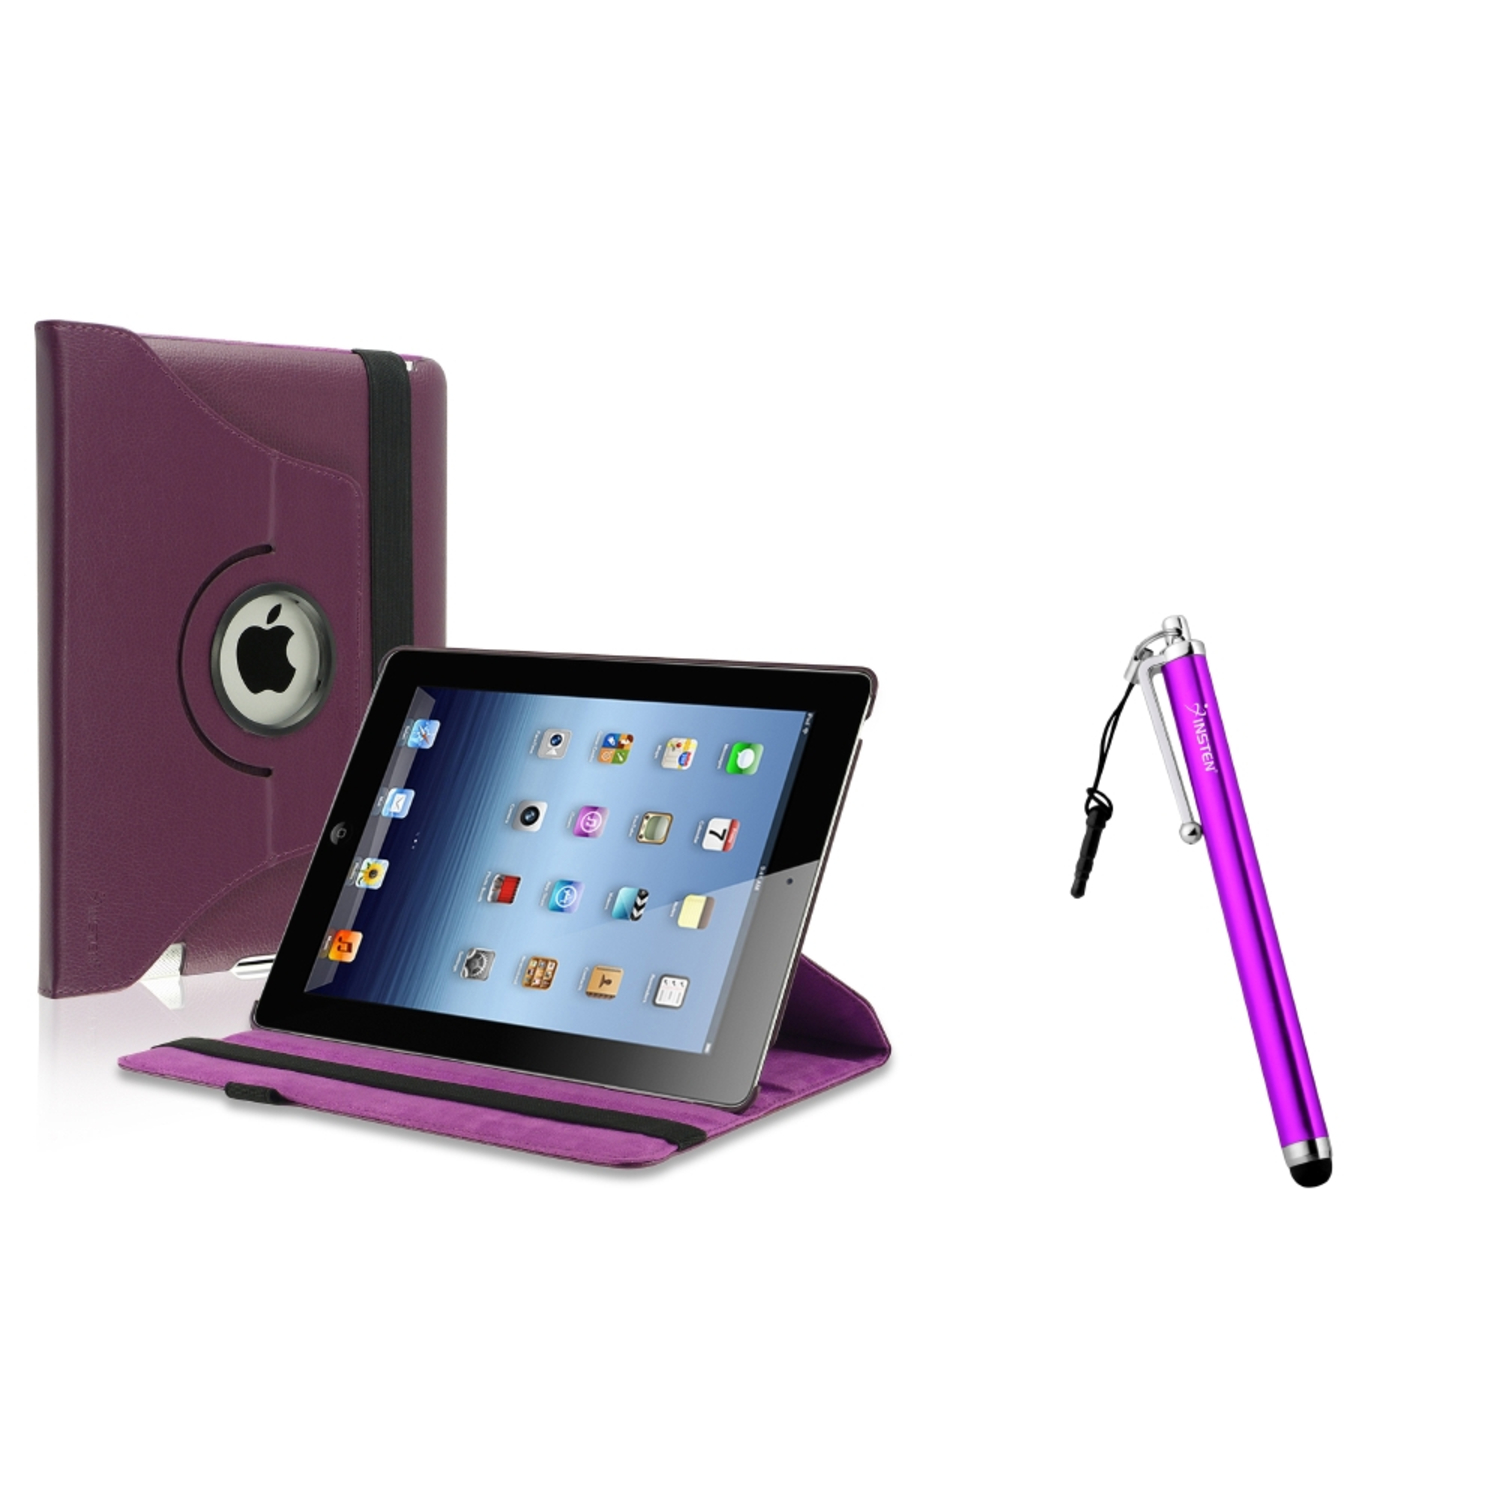 Insten Purple 360 Swivel Leather Case+Clip 3.5mm Screen Stylus Pen for iPad 2/3/4 4th (Supports Auto Sleep/Wake)